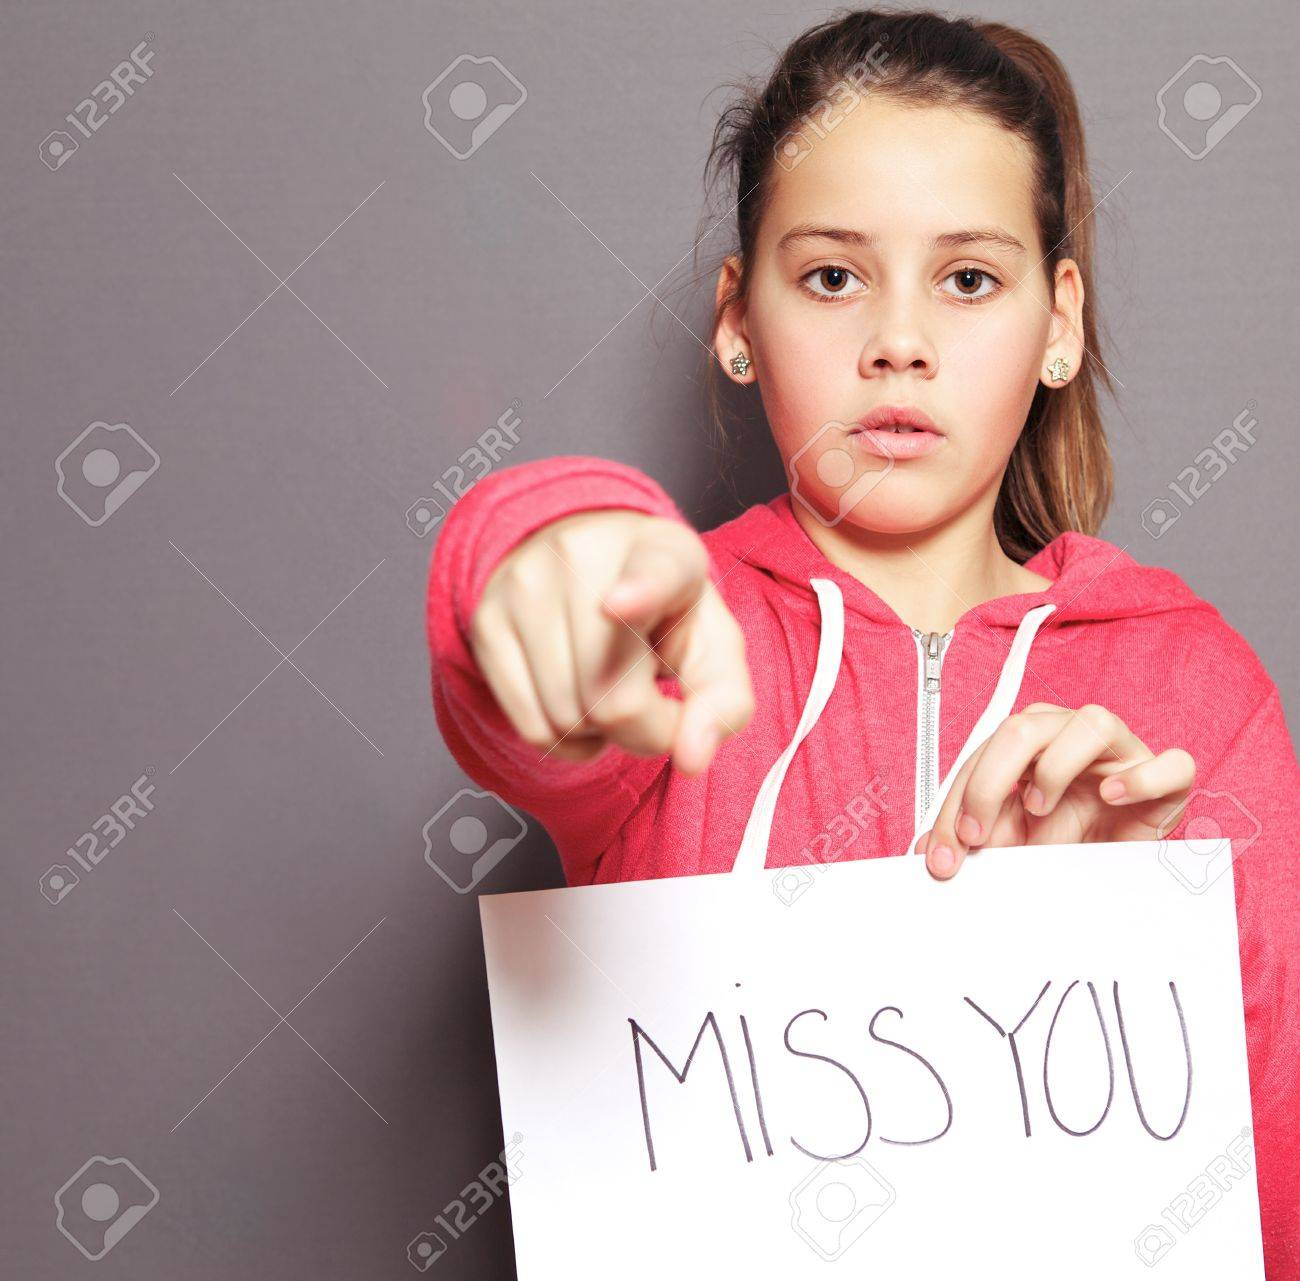 Cute young girl with a doleful expression holding up a sheet of paper with a handwritten MISS YOU and pointing her finger towards the camera, studio portrait on grey Stock Photo - 17495006